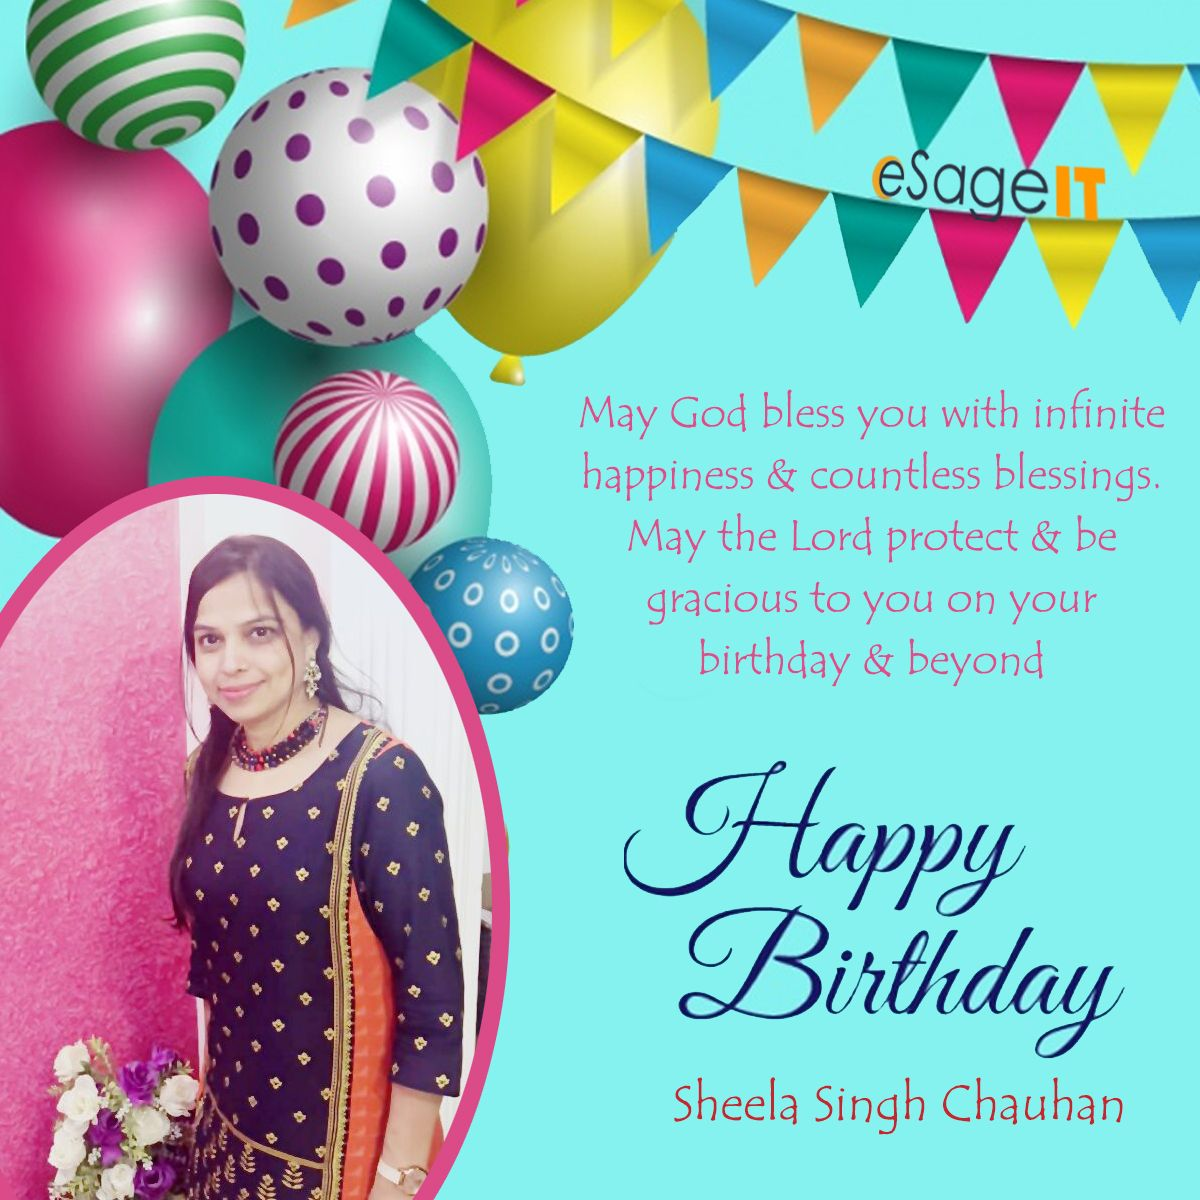 Many Many Happy Returns Of The Day From The Whole Team Of Esageit May God Bless You With Infinite Happiness It S Your Birthday Happy Birthday God Bless You